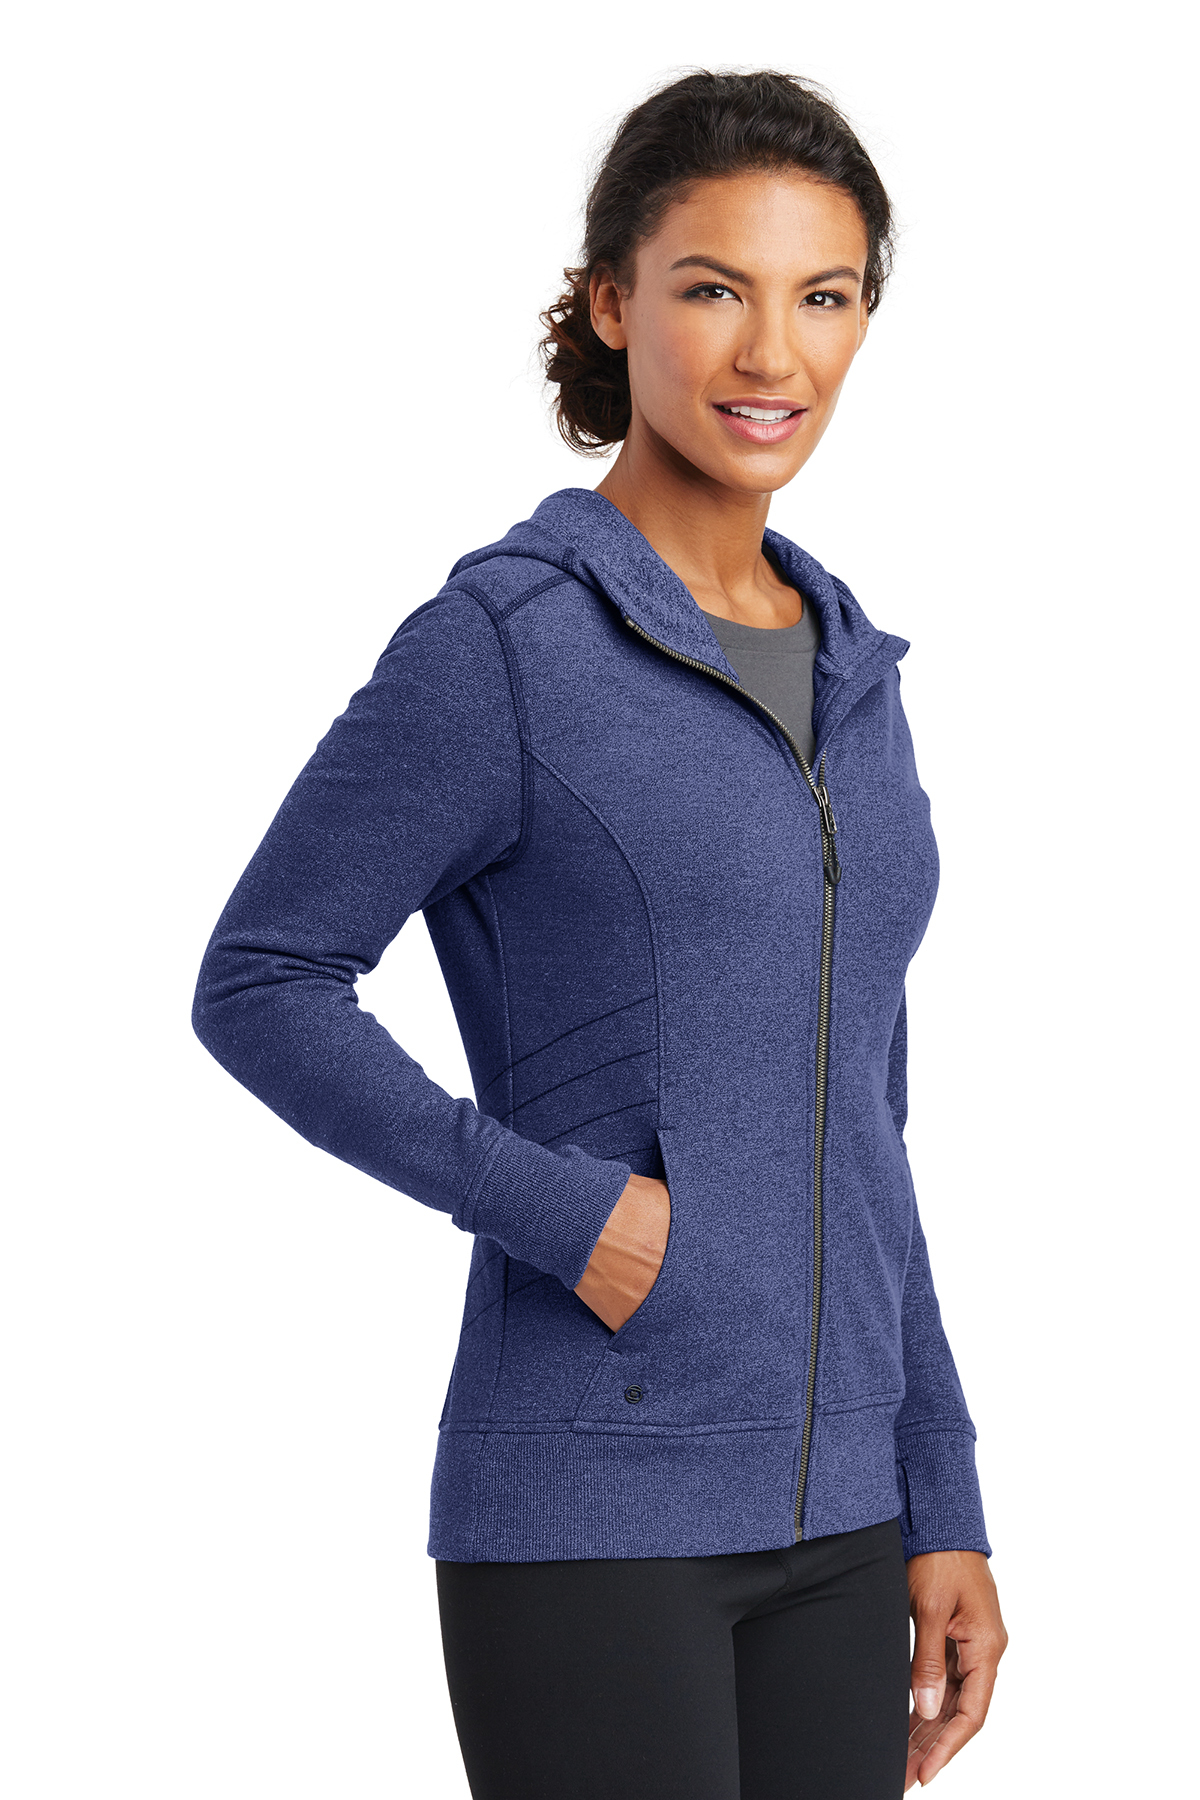 Ogio endurance ladies cadmium jacket ladies sweatshirts a maximum of 8 logos have been uploaded please remove a logo from my logos to continue malvernweather Image collections